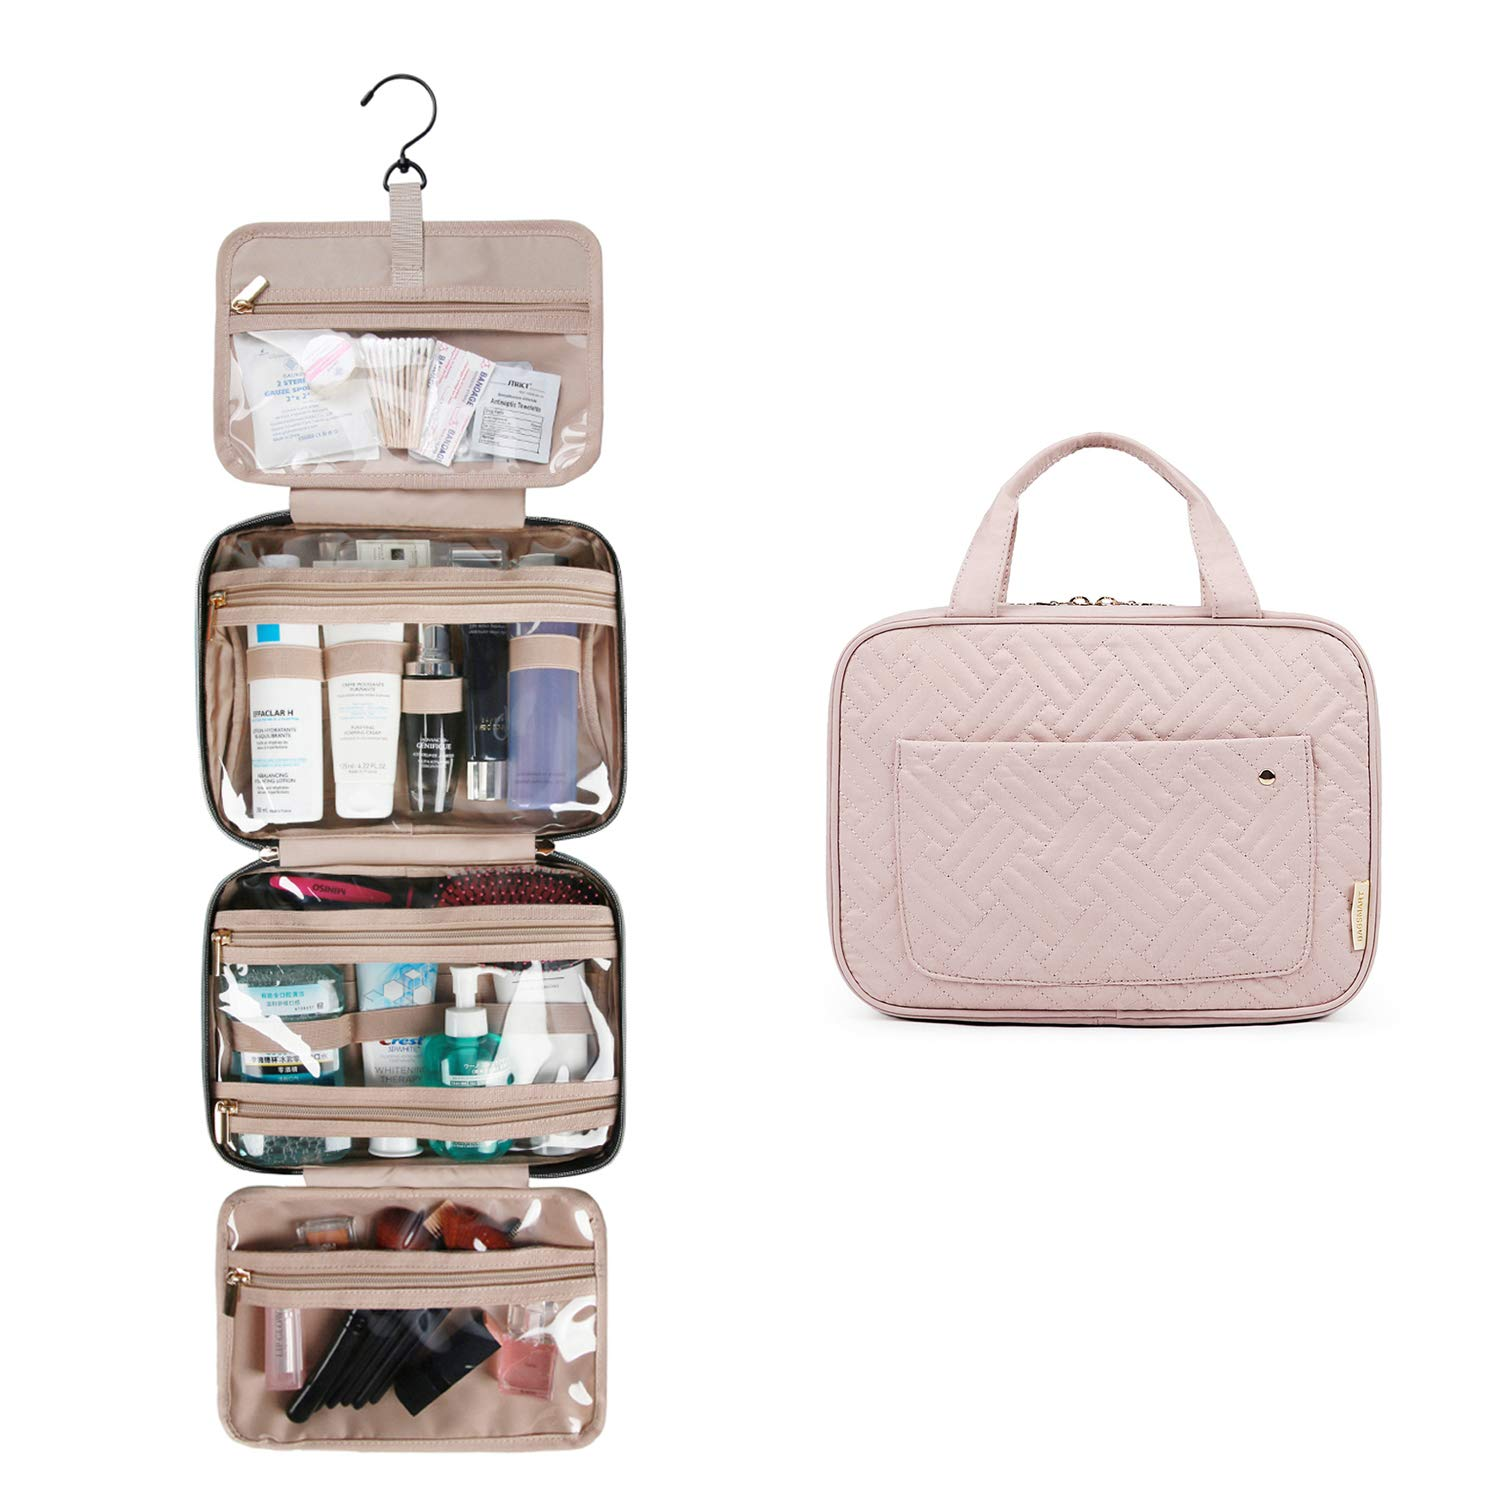 BAGSMART Toiletry Bag Travel Bag with hanging hook, Water-resistant Makeup Cosmetic Bag Travel Organizer for Accessories, Shampoo, Full Sized Container, Toiletries, Soft Pink by bagsmart